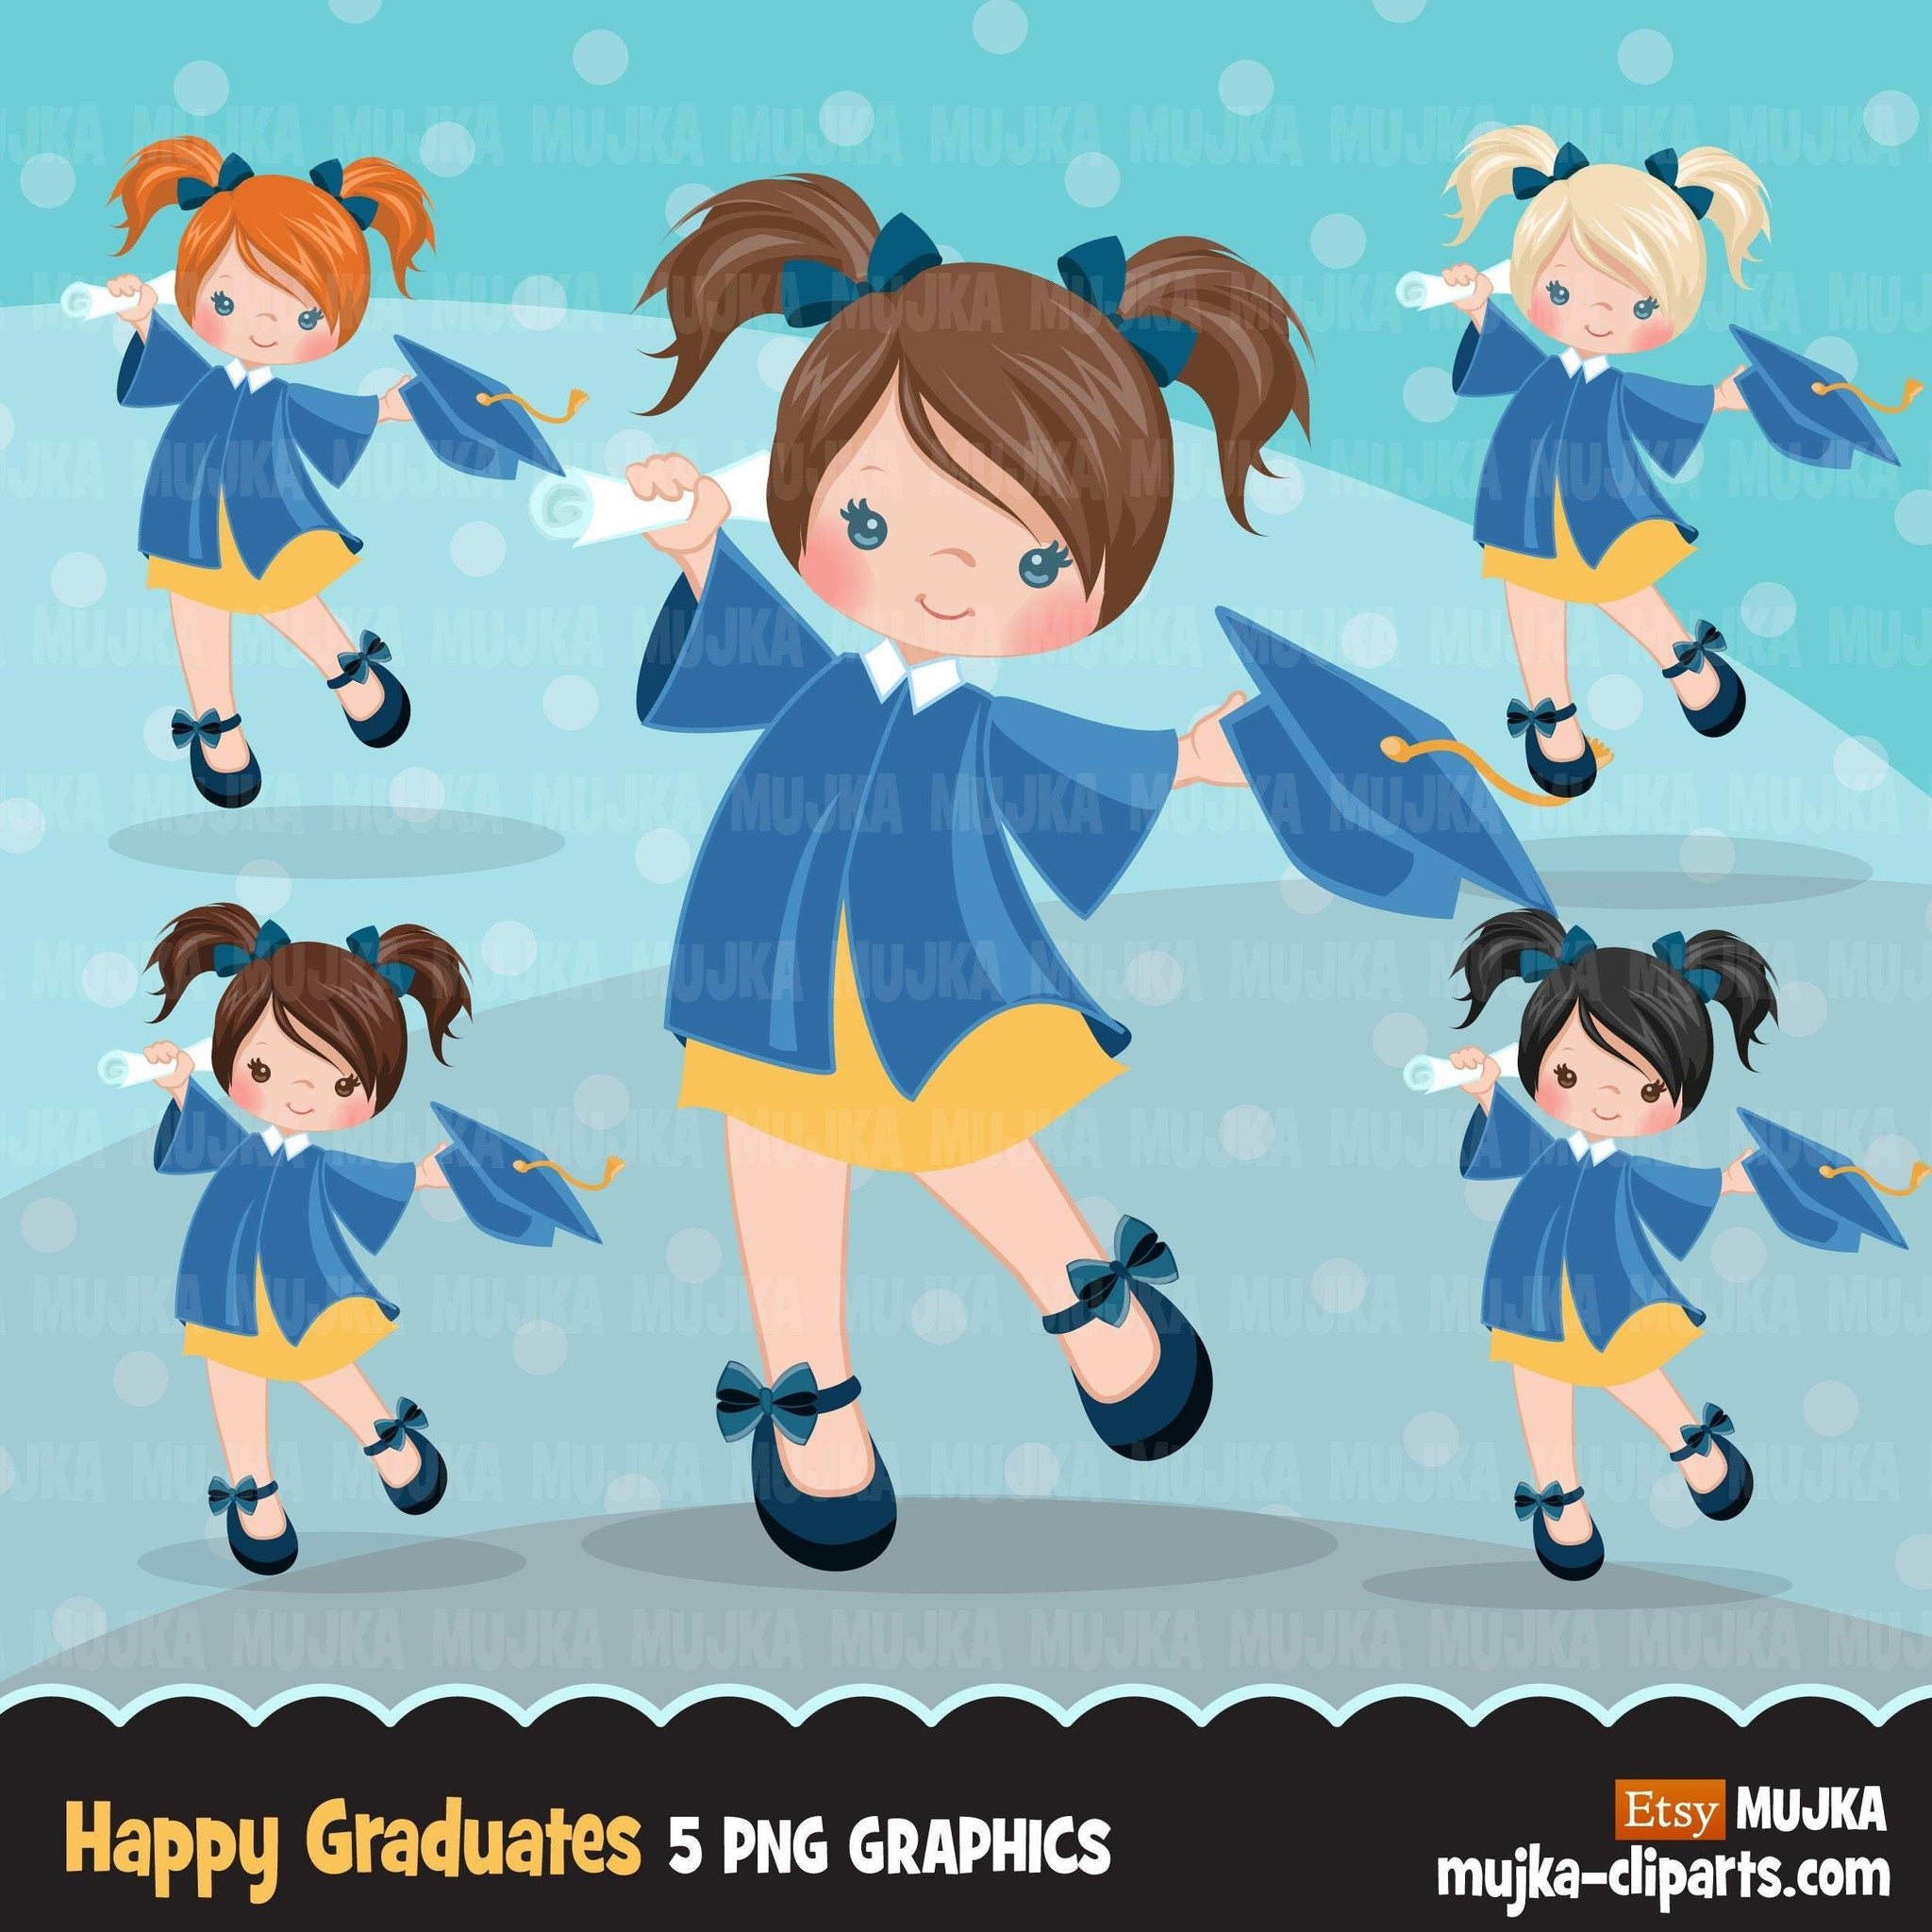 Graduation Clipart, graduate girls with blue gown, cape and scroll jumping, school, student class of graphics, PNG clip art